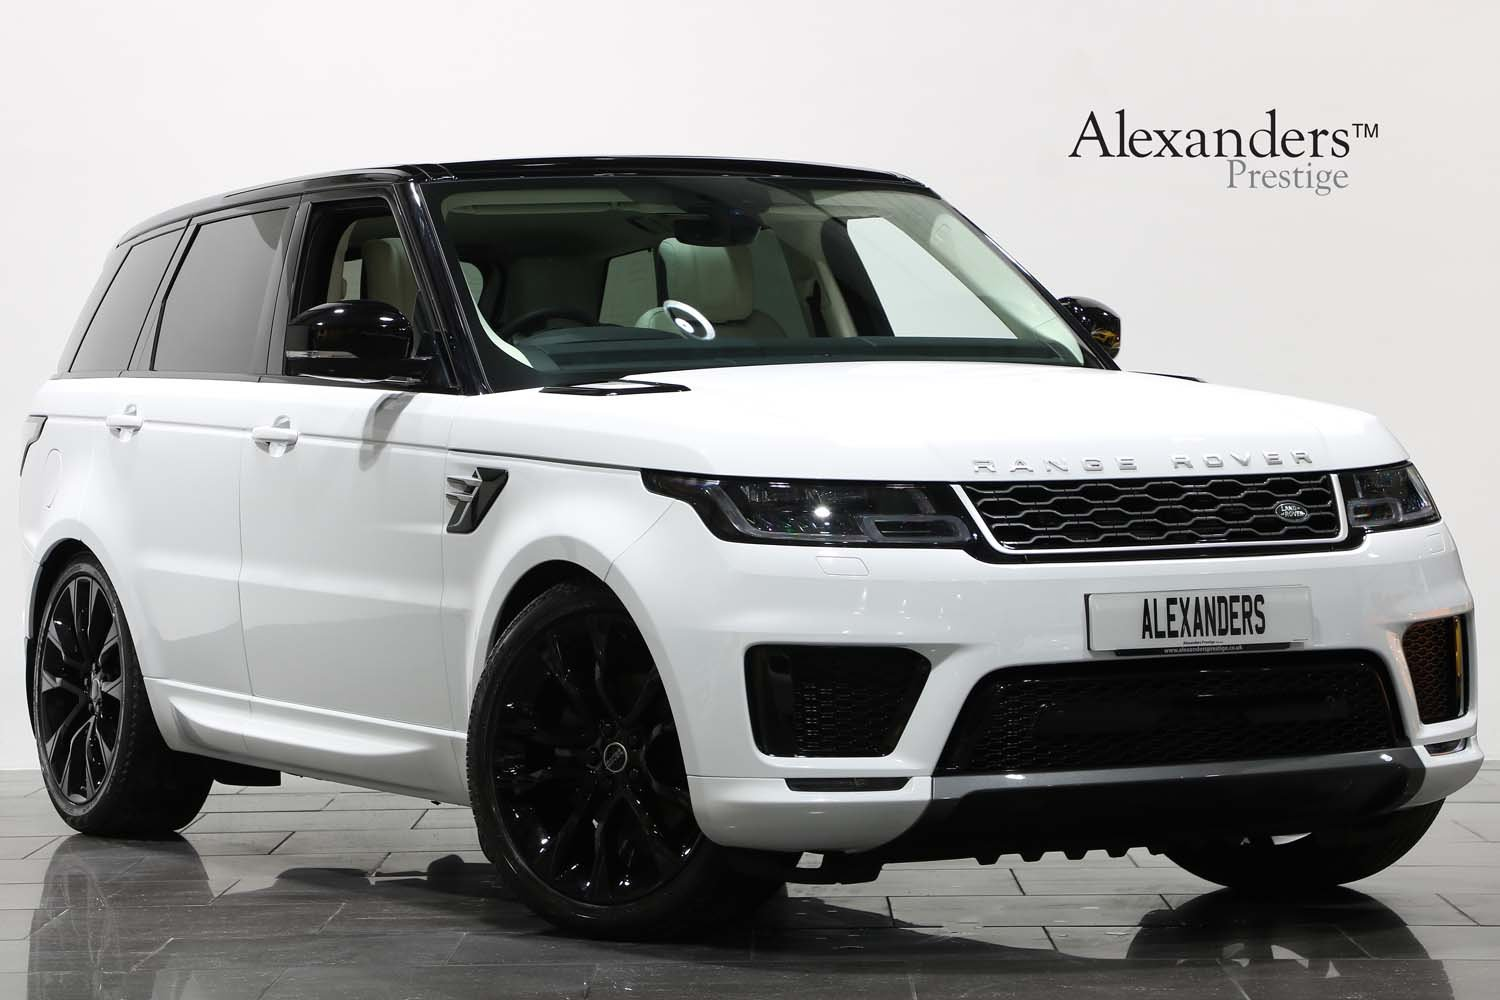 2018 68 RANGE ROVER SPORT 3.0 SDV8 HSE AUTO For Sale (picture 1 of 6)